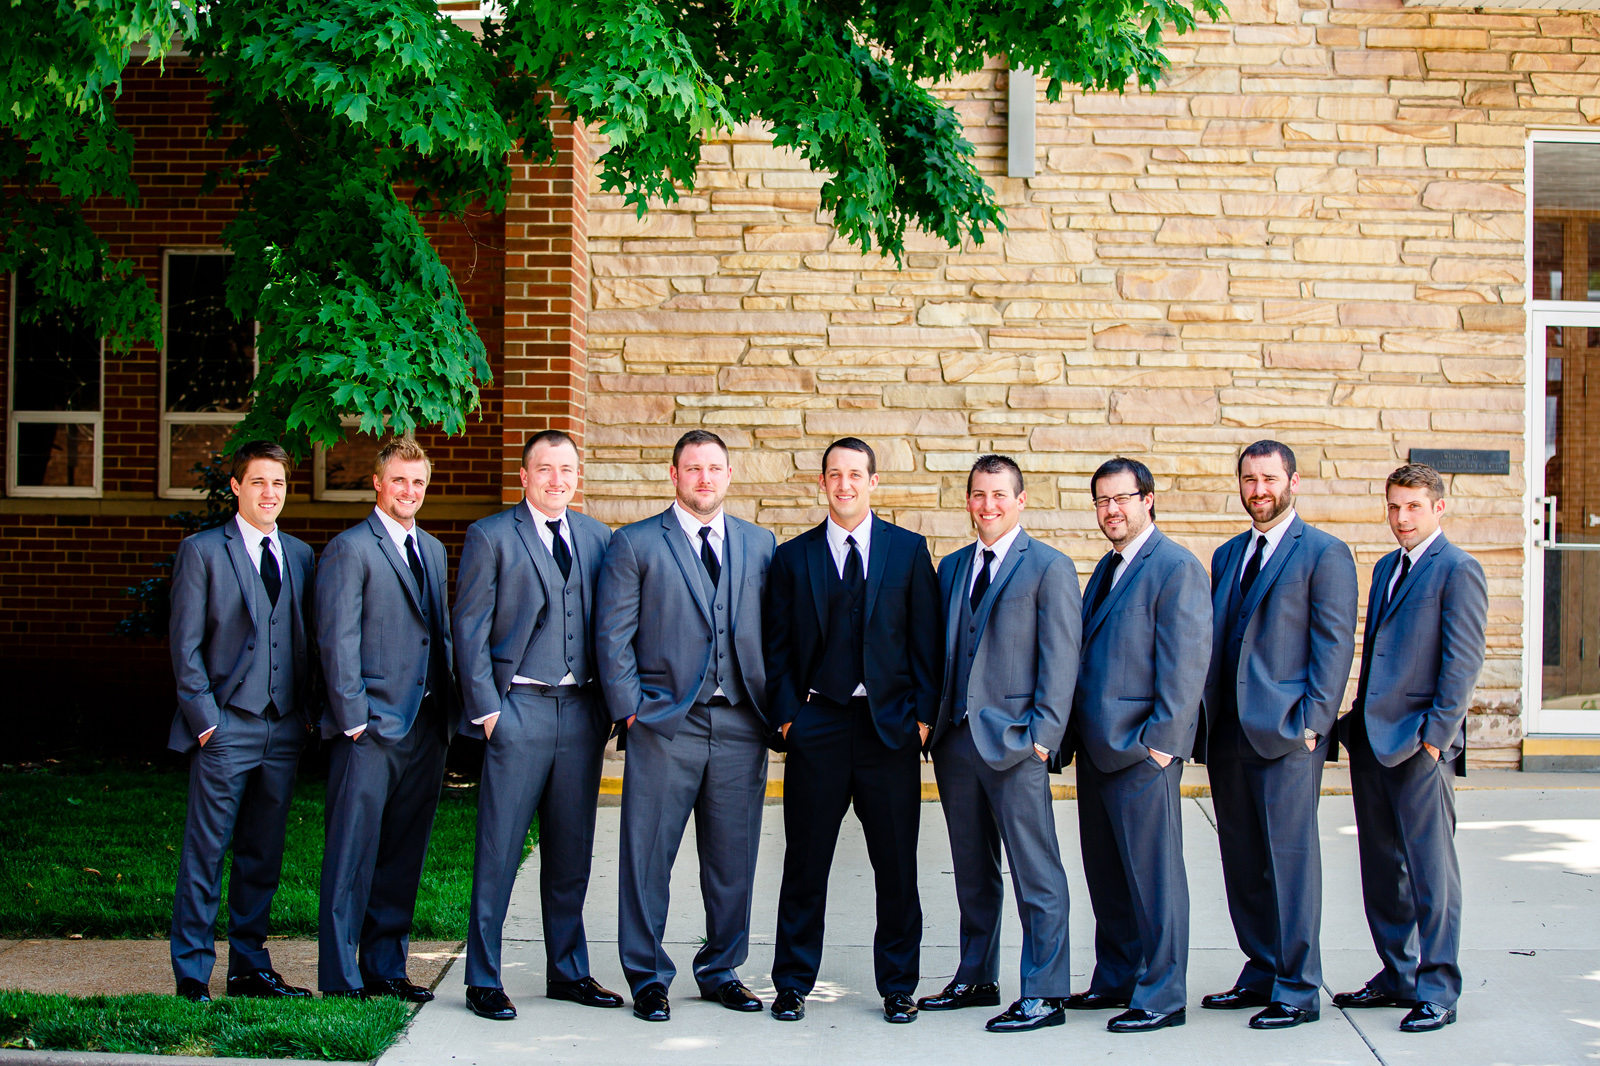 Millstadt Bride Wedding Photos at St. Paul United Church of Christ with St. Louis Wedding Photographers by Oldani Photography 3.jpg